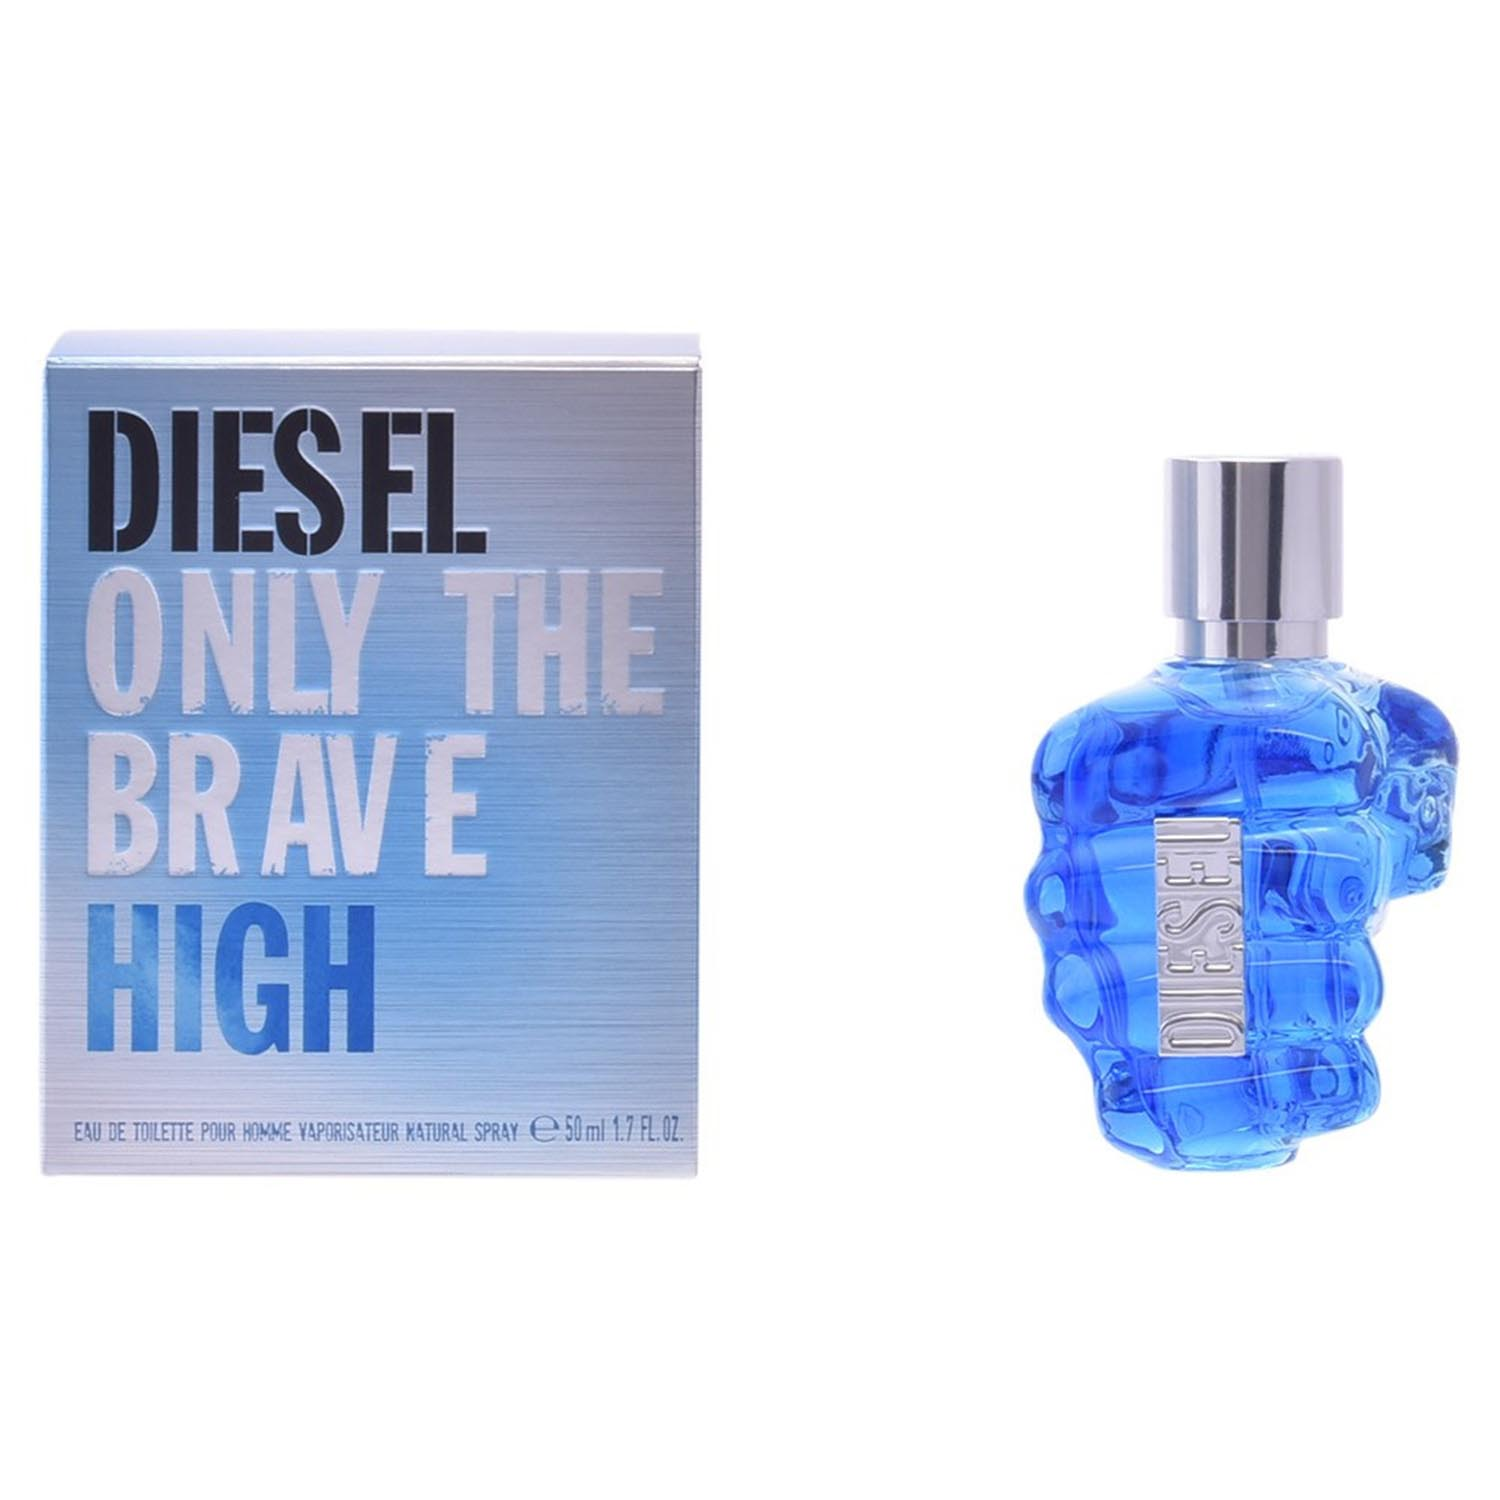 Diesel only the brave high eau de toilette 50ml